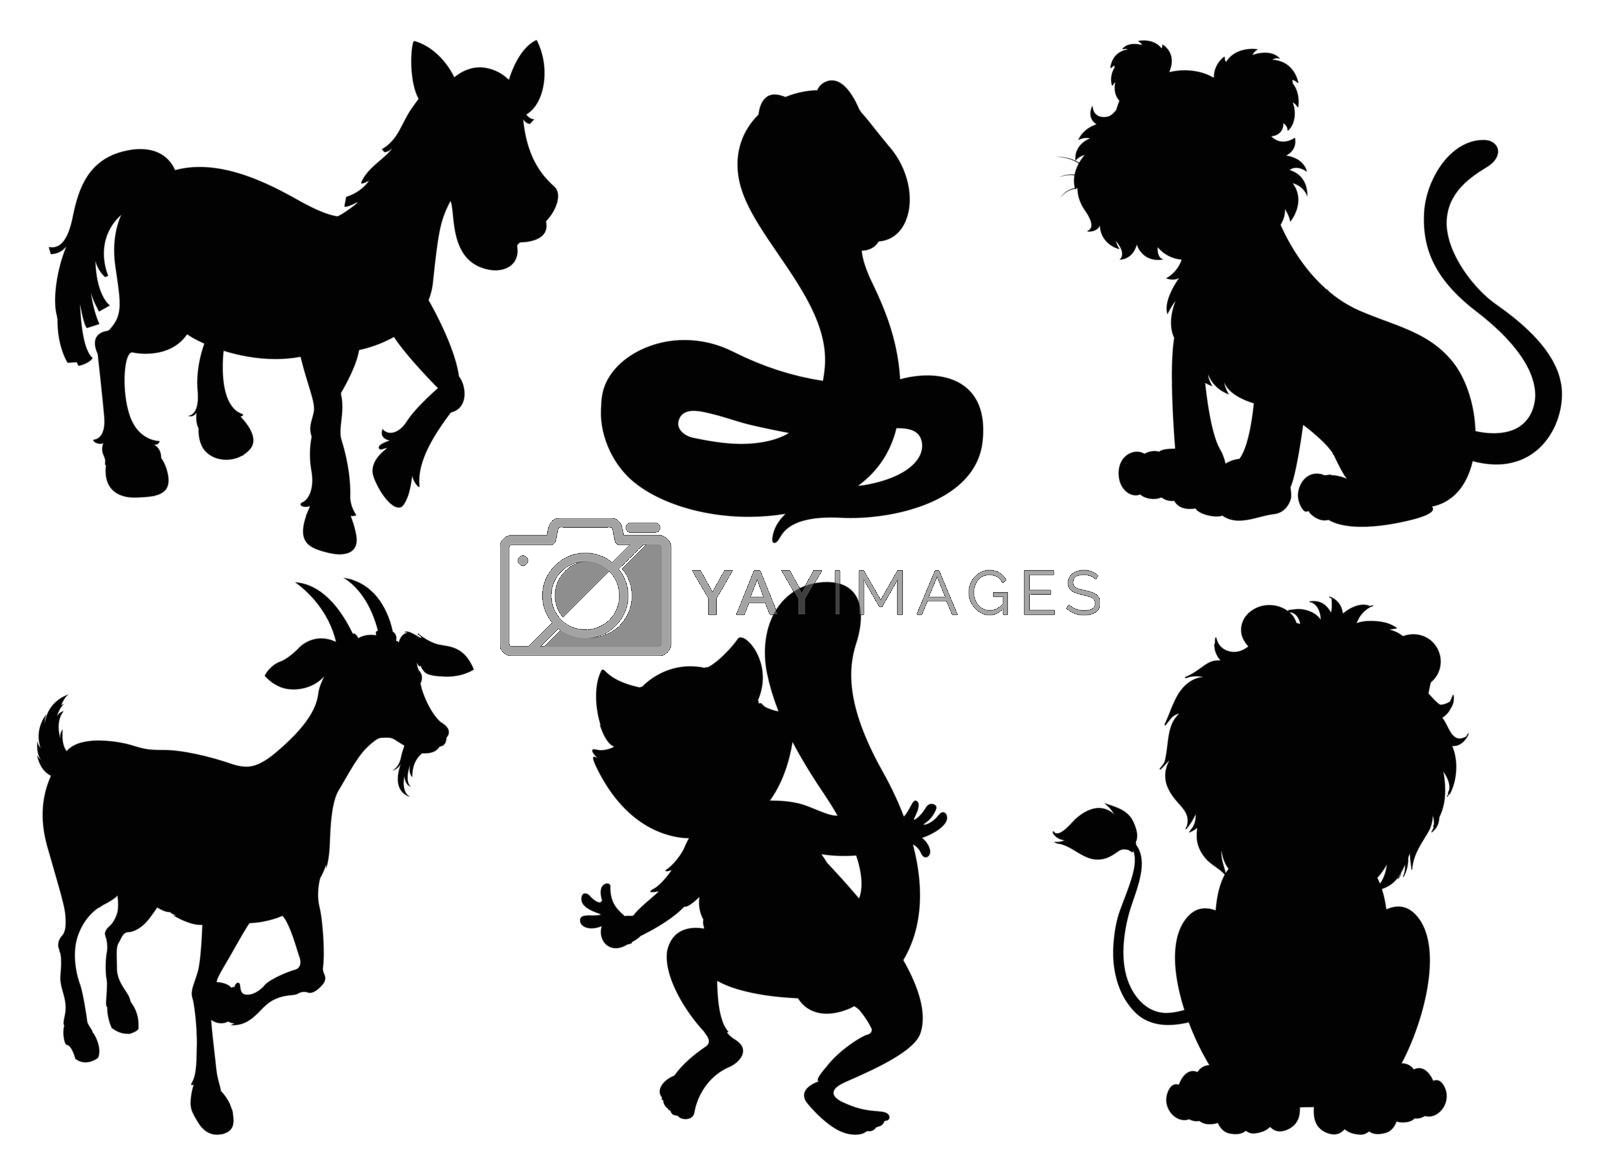 Illustration of the black images of wild animals on a white background